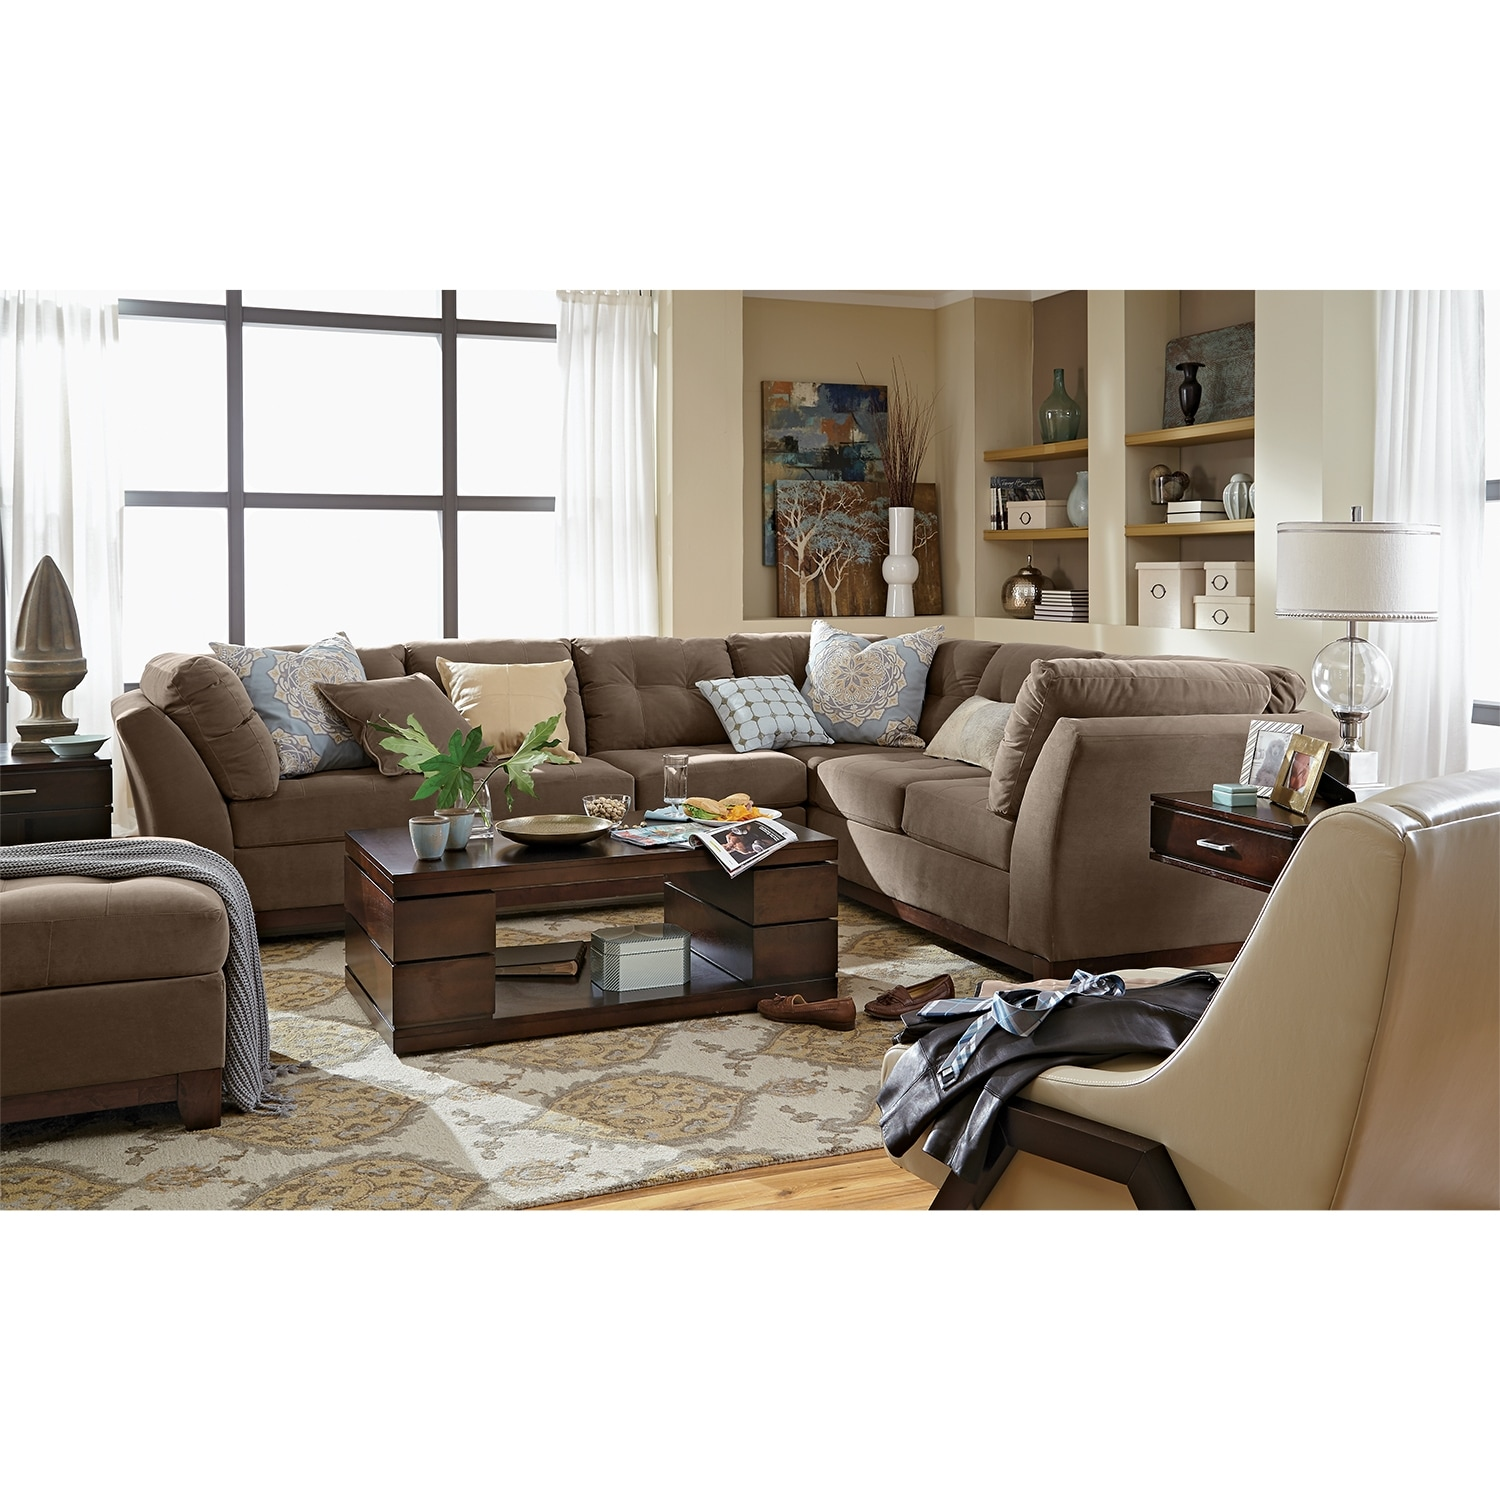 Solace Cocoa Ii Upholstery 2 Pc Sectional Reverse And Ottoman Value City Furniture